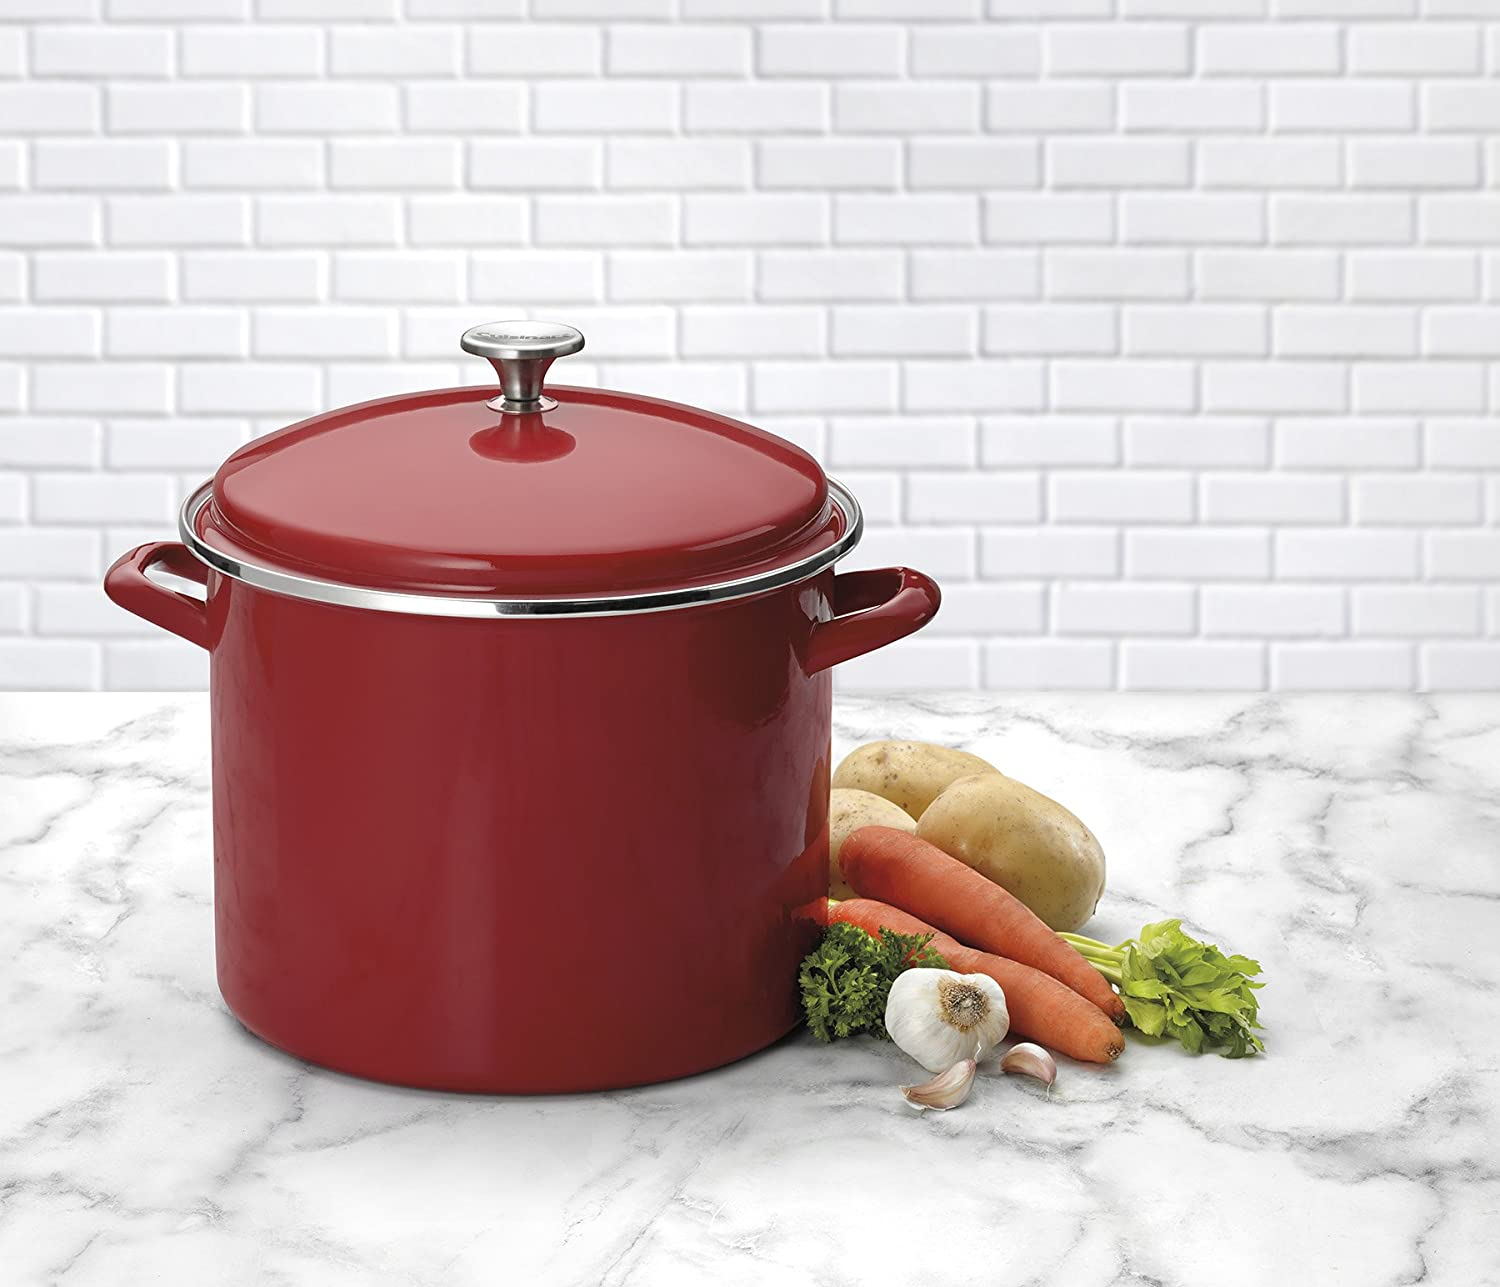 Stockpot | Discount Kitchenware Items | Under $50 Gift Ideas For People Who Love To Cook